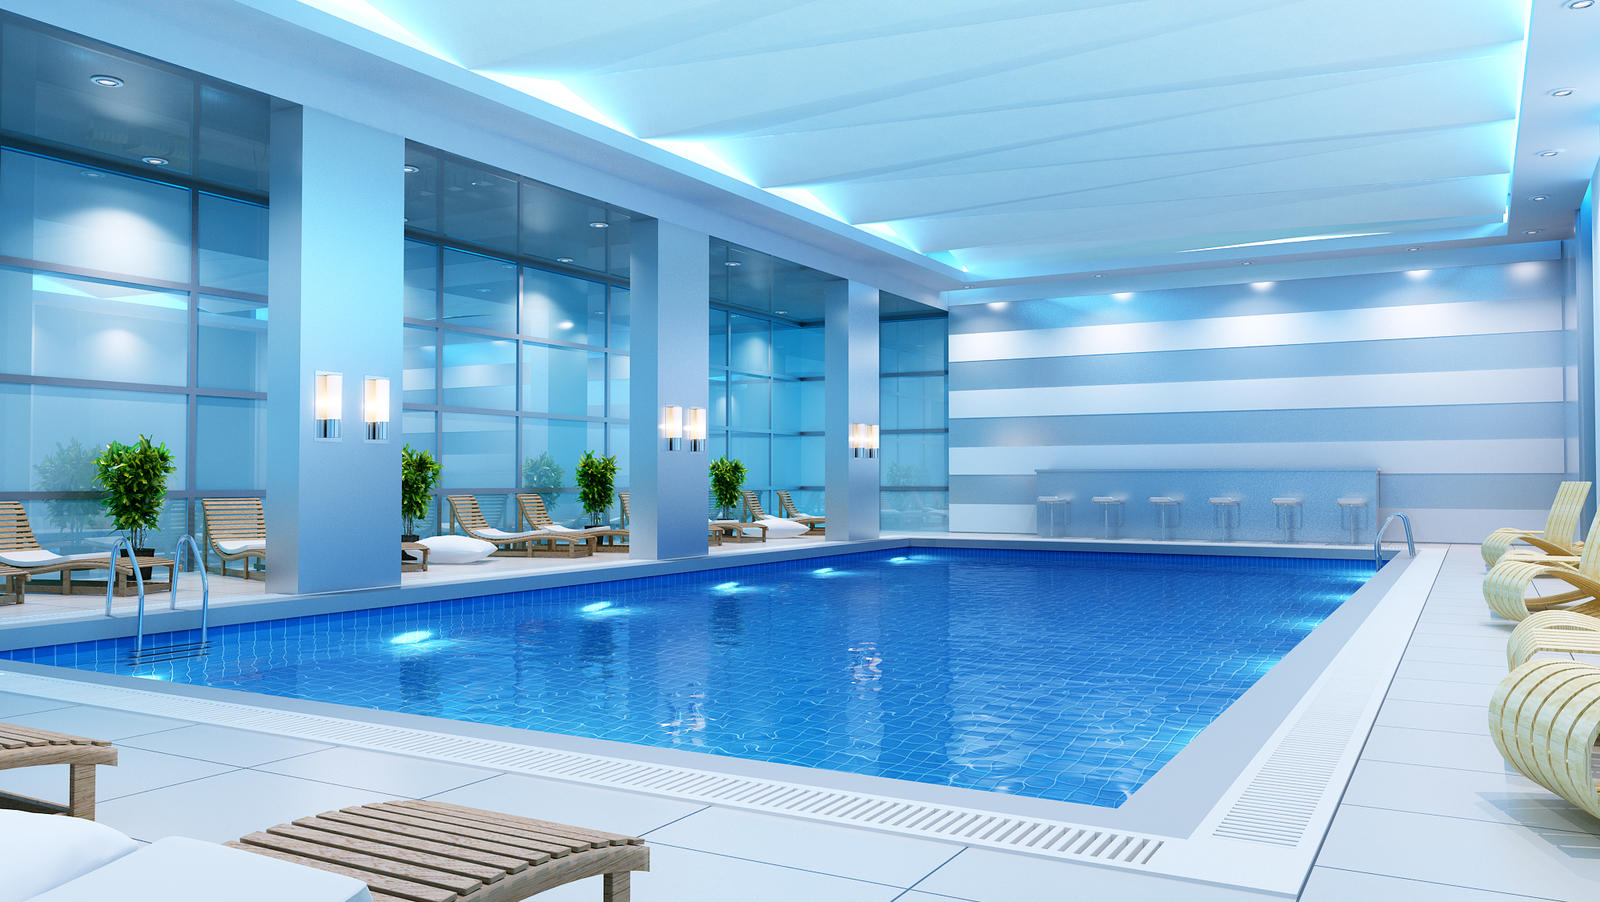 Swimming pool design by tolcha on deviantart for Swimming pool room decor